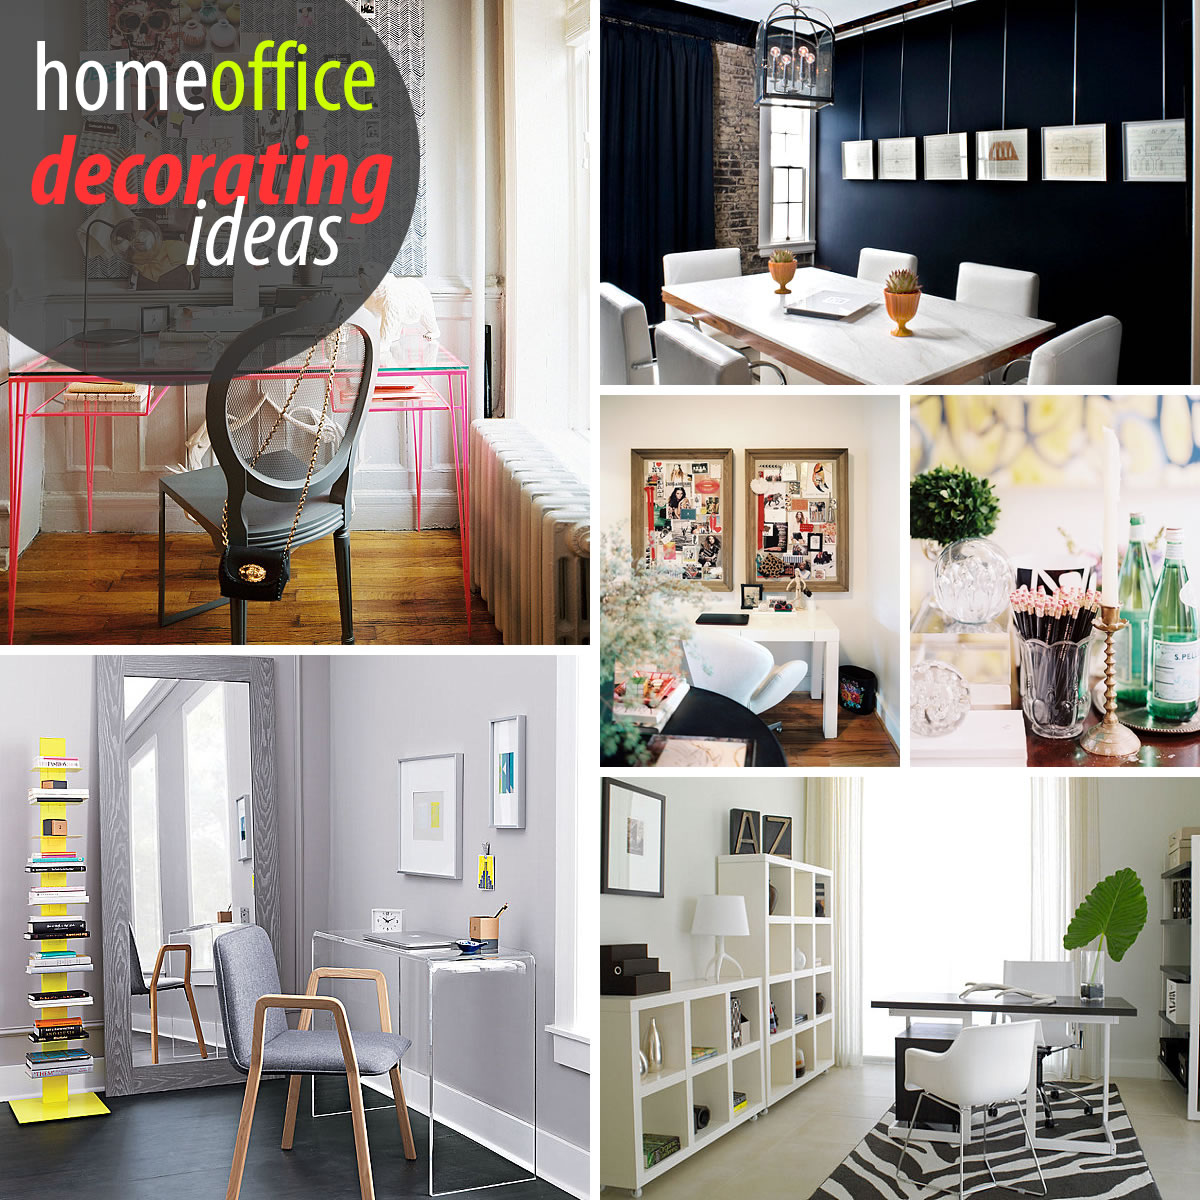 Diy Home Design Ideas Com: Creative Home Office Decorating Ideas